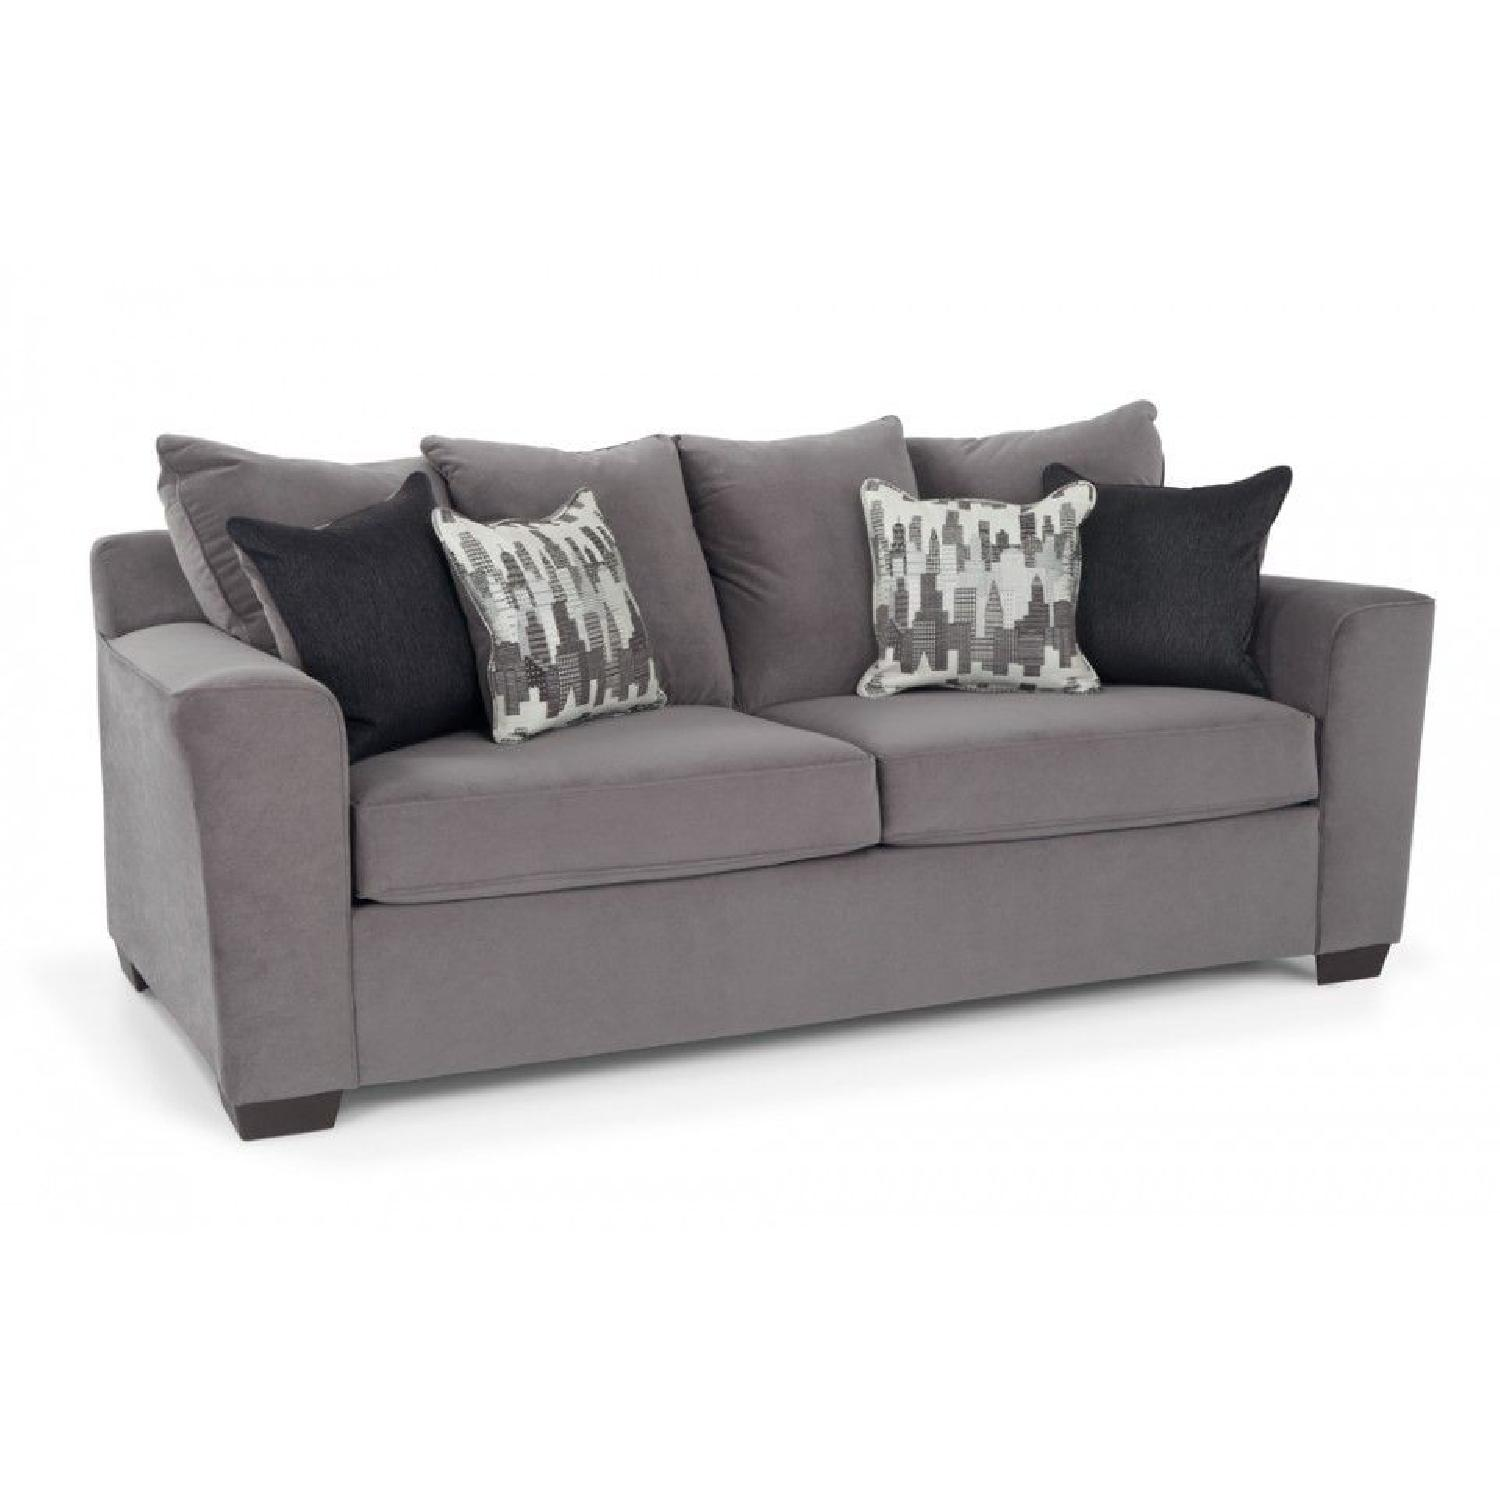 Bob's Skyline Gray Fabric Sofa